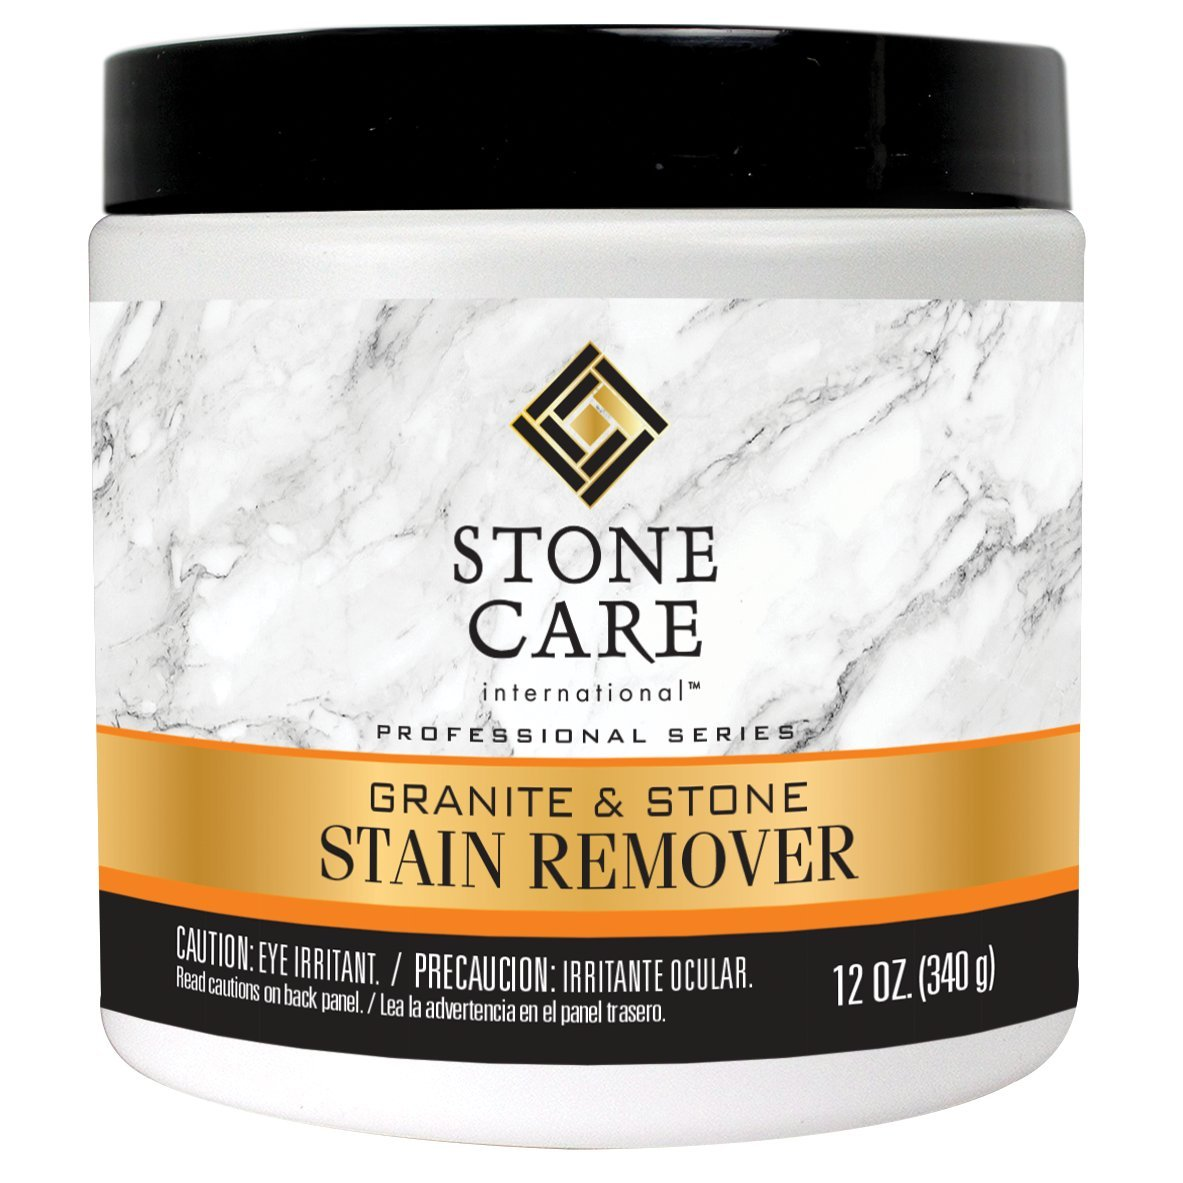 Stone Care International Stone Stain Remover Poultice Powder - Safely Removes Deep Food, Ink, Mildew and Oil Stains From Stone Surfaces - 12oz